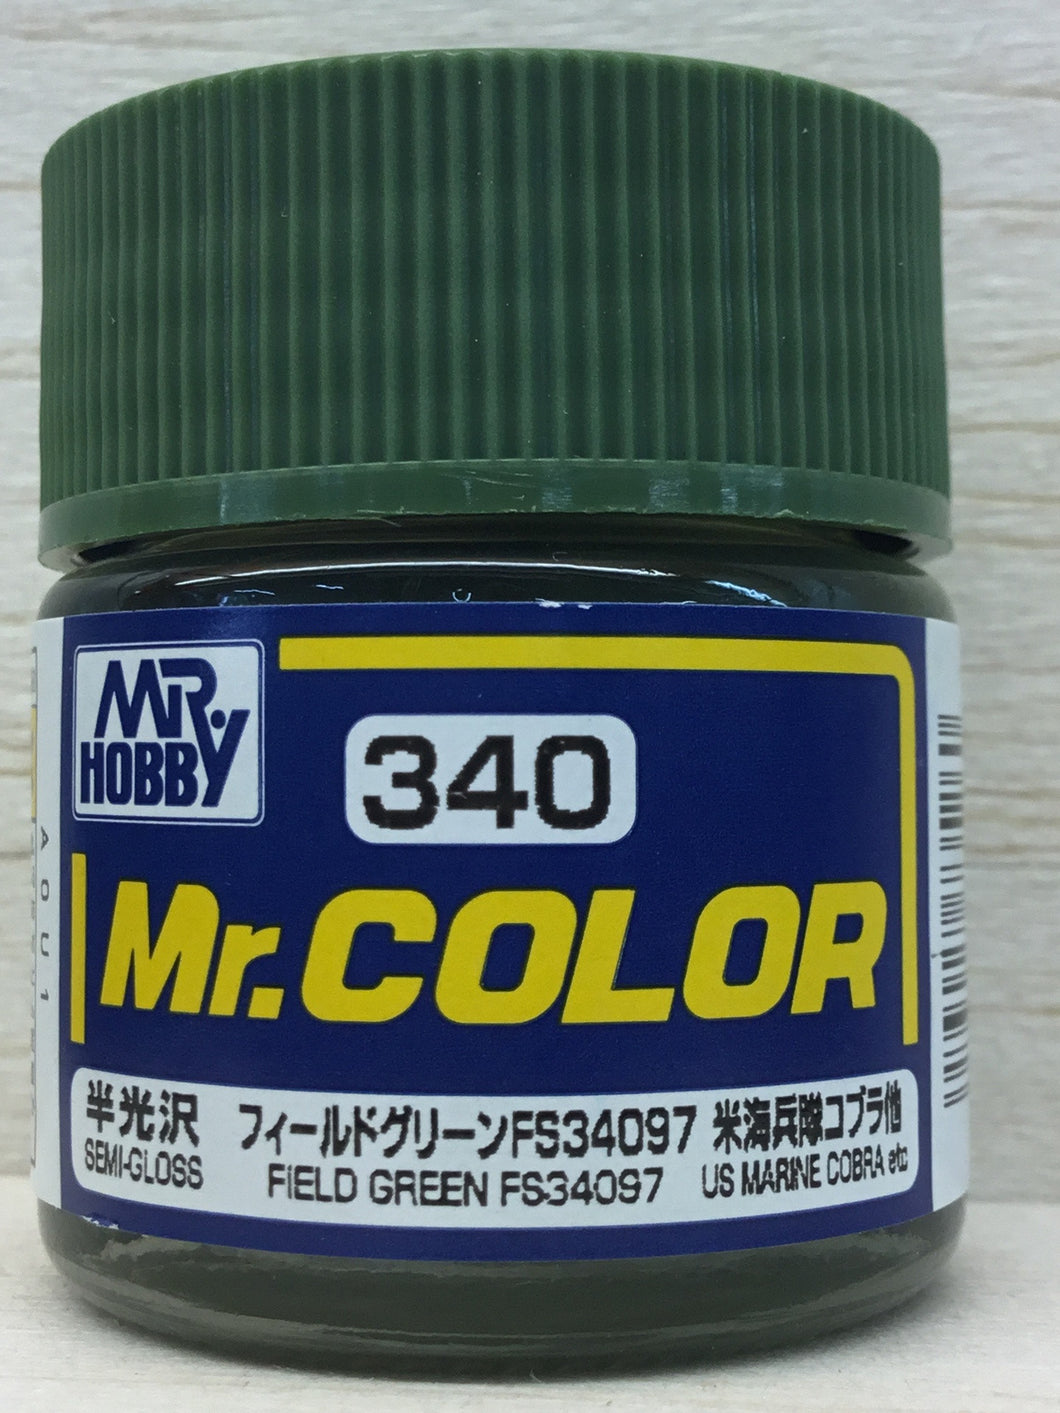 GUNZE MR COLOR C340 SEMI GLOSS FIELD GREEN FS34097